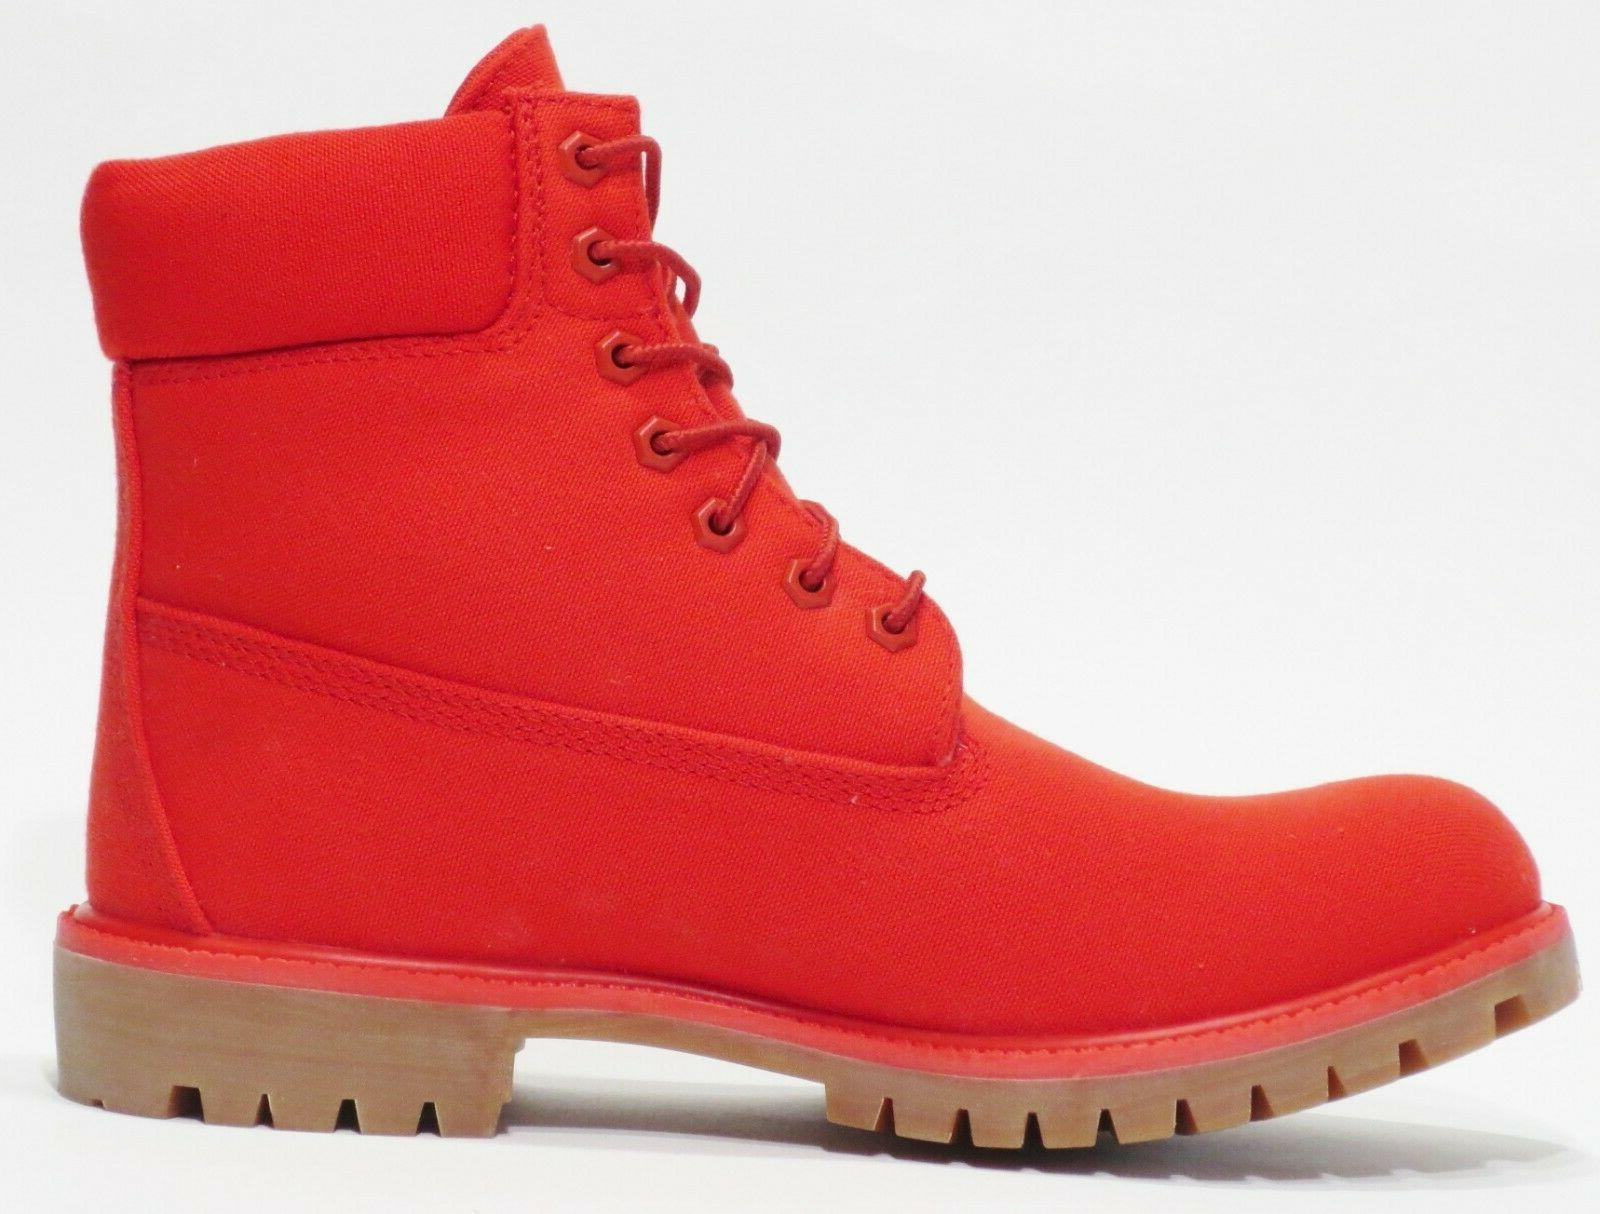 Timberland 6 inch Red